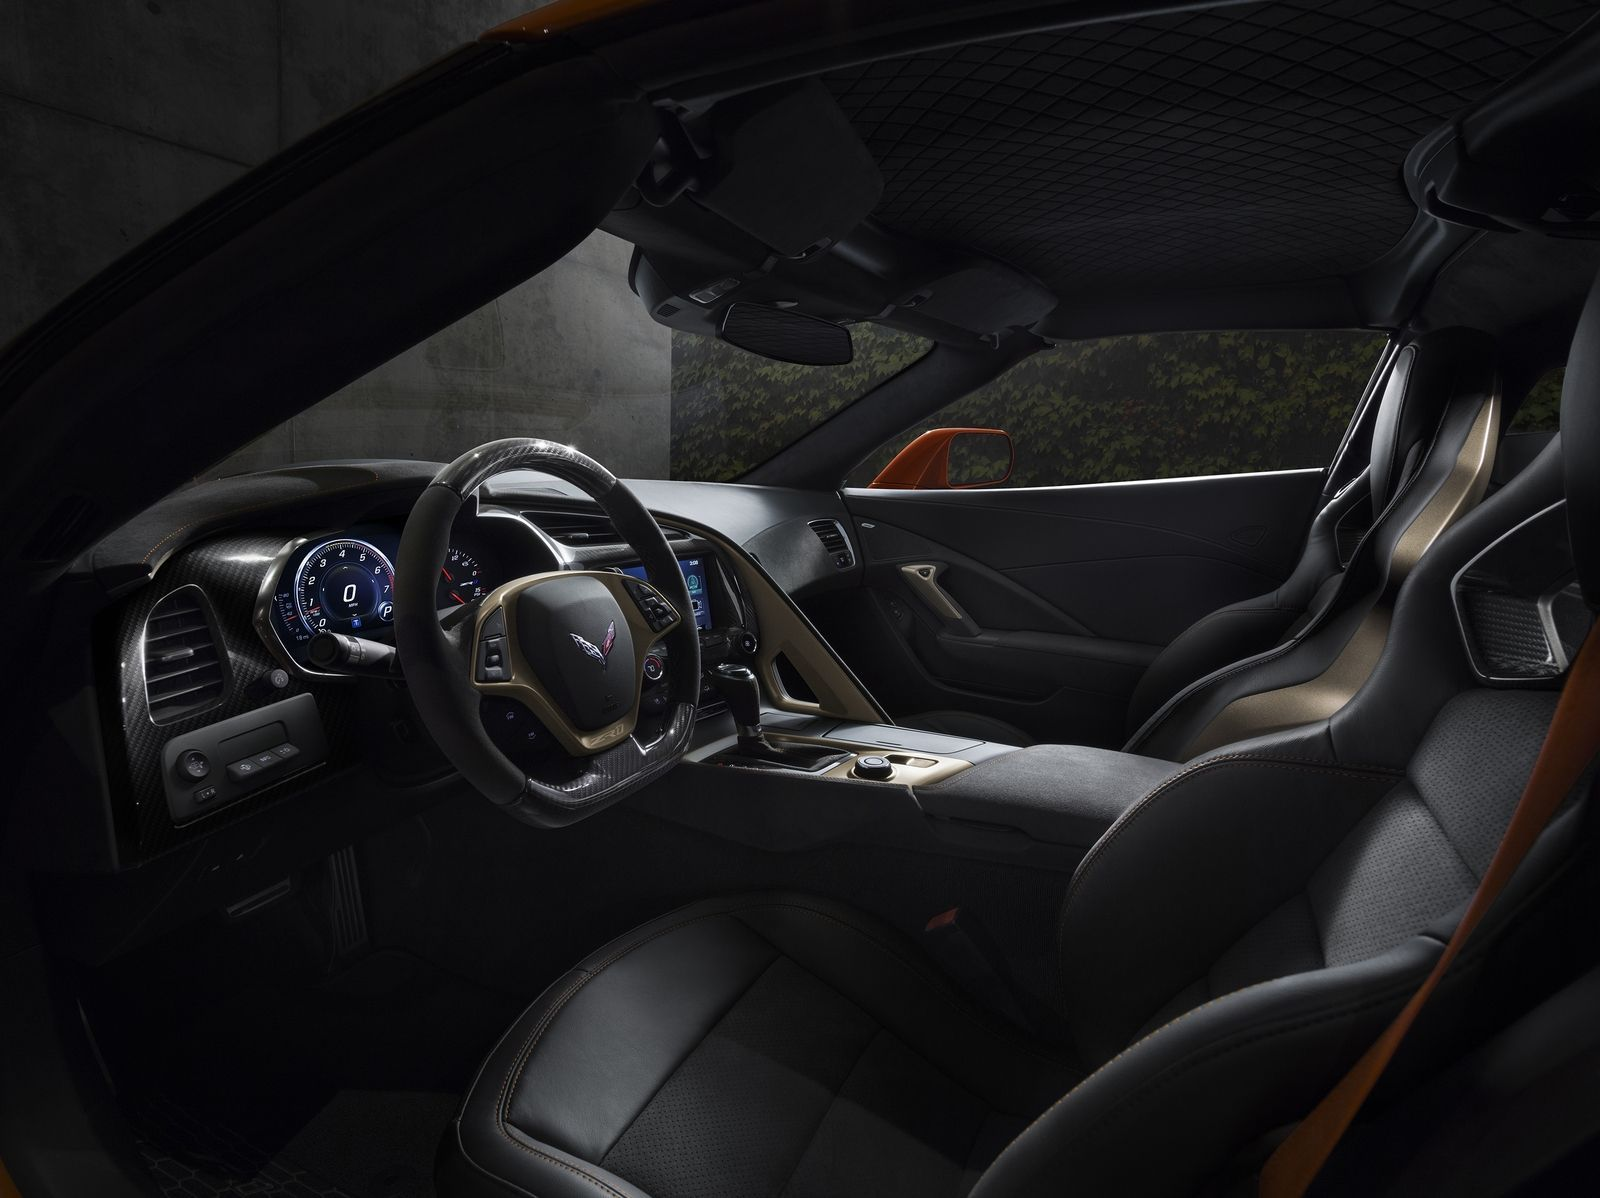 2019 Chevrolet Corvette ZR1: Here It Is, In All Its 755 HP Glory